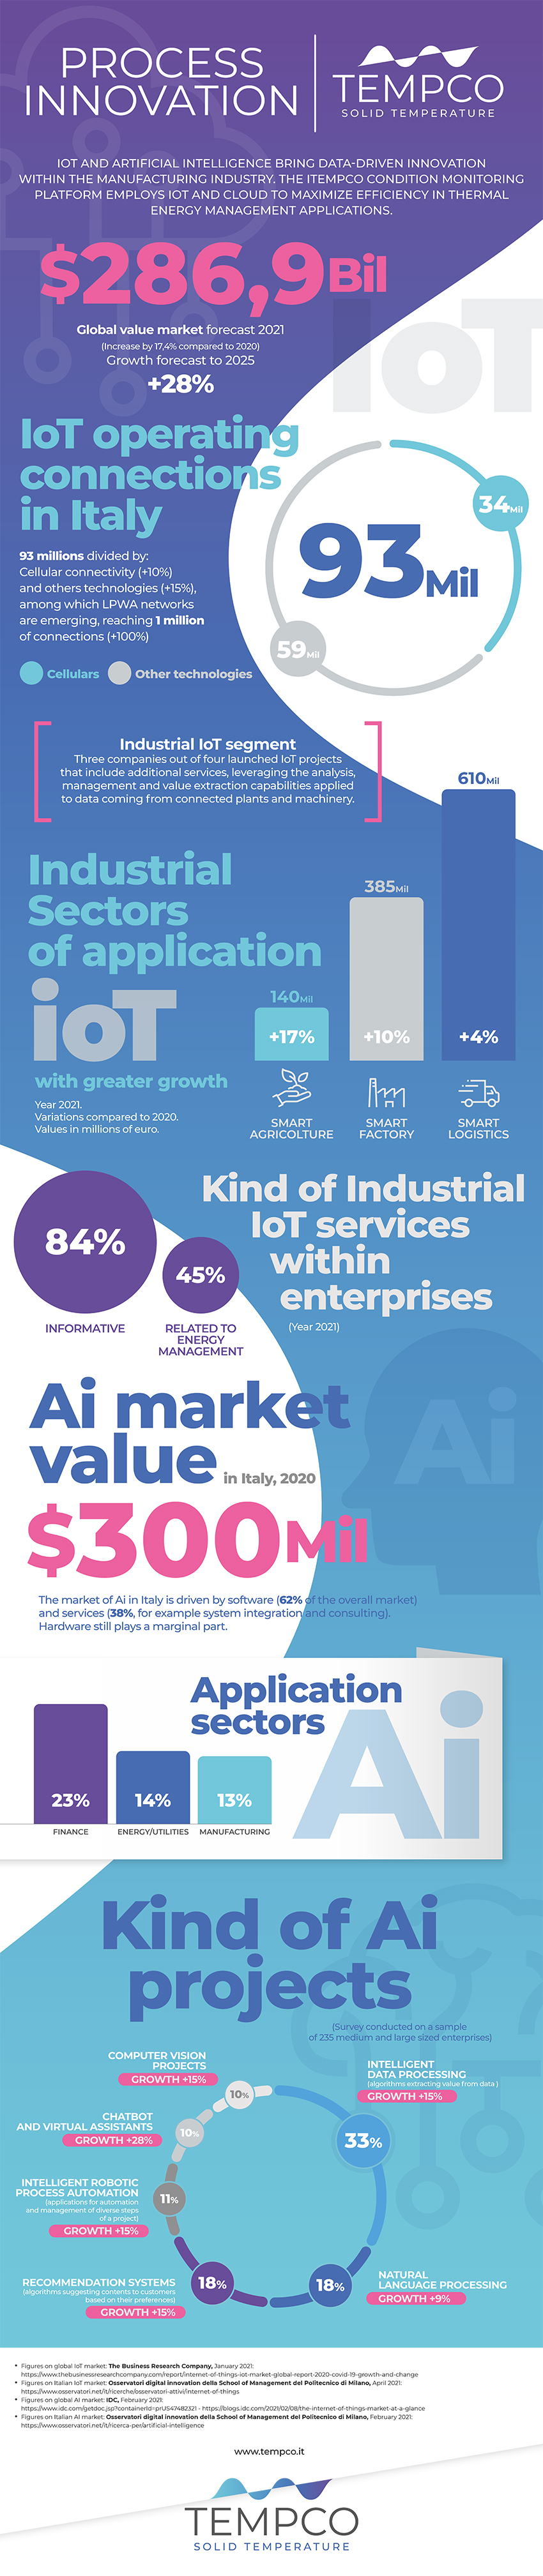 Tempco Infographic AI IoT industrial process innovation